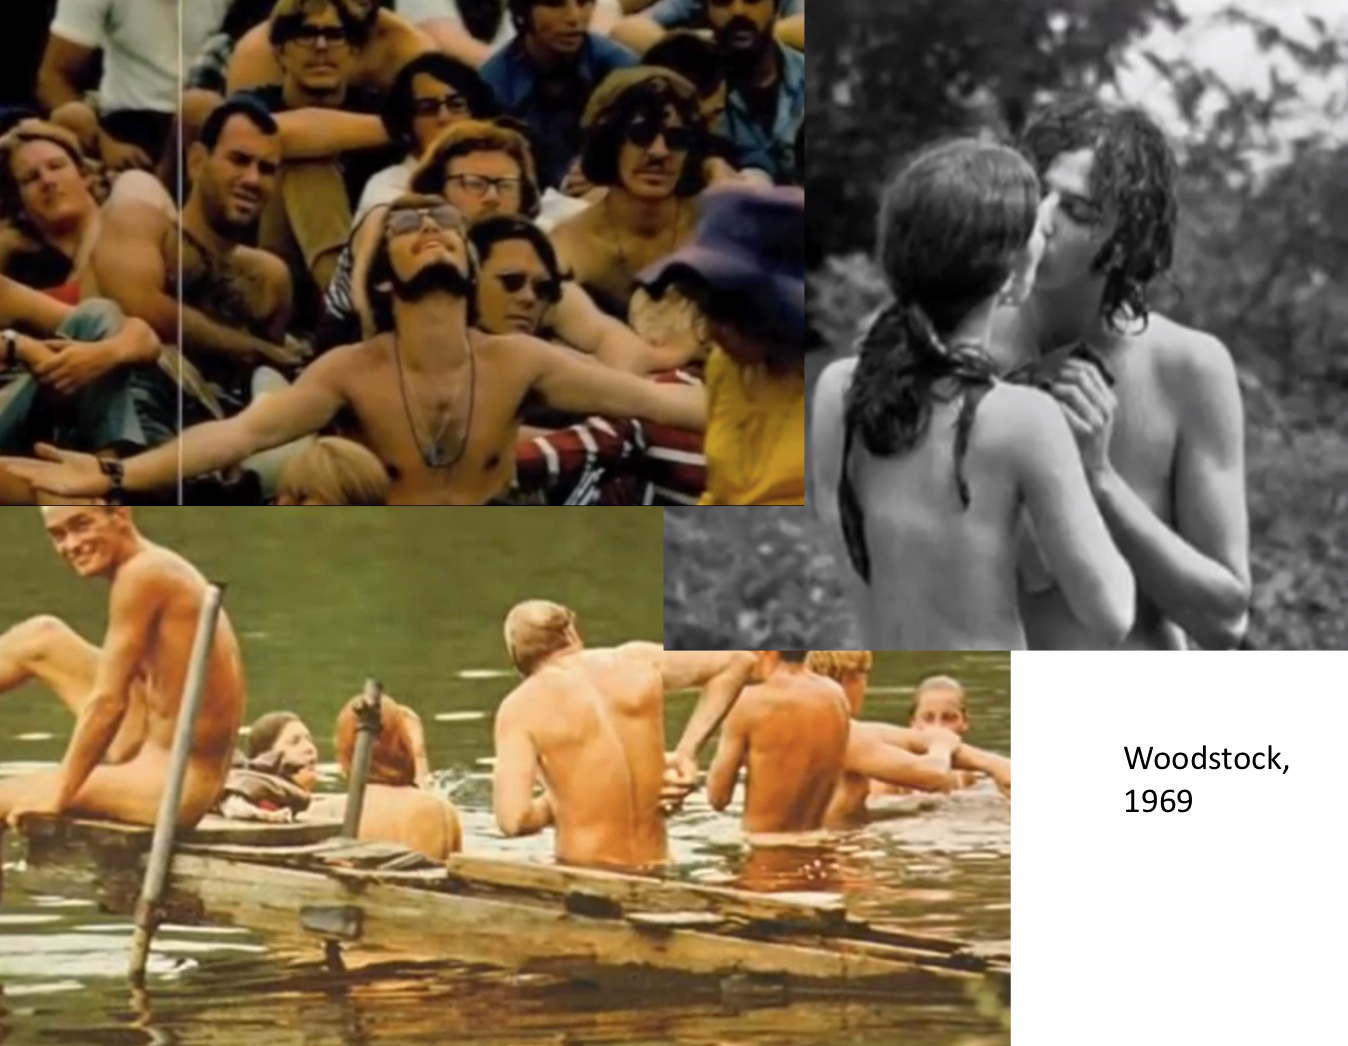 Hippie orgies were a daily occurence